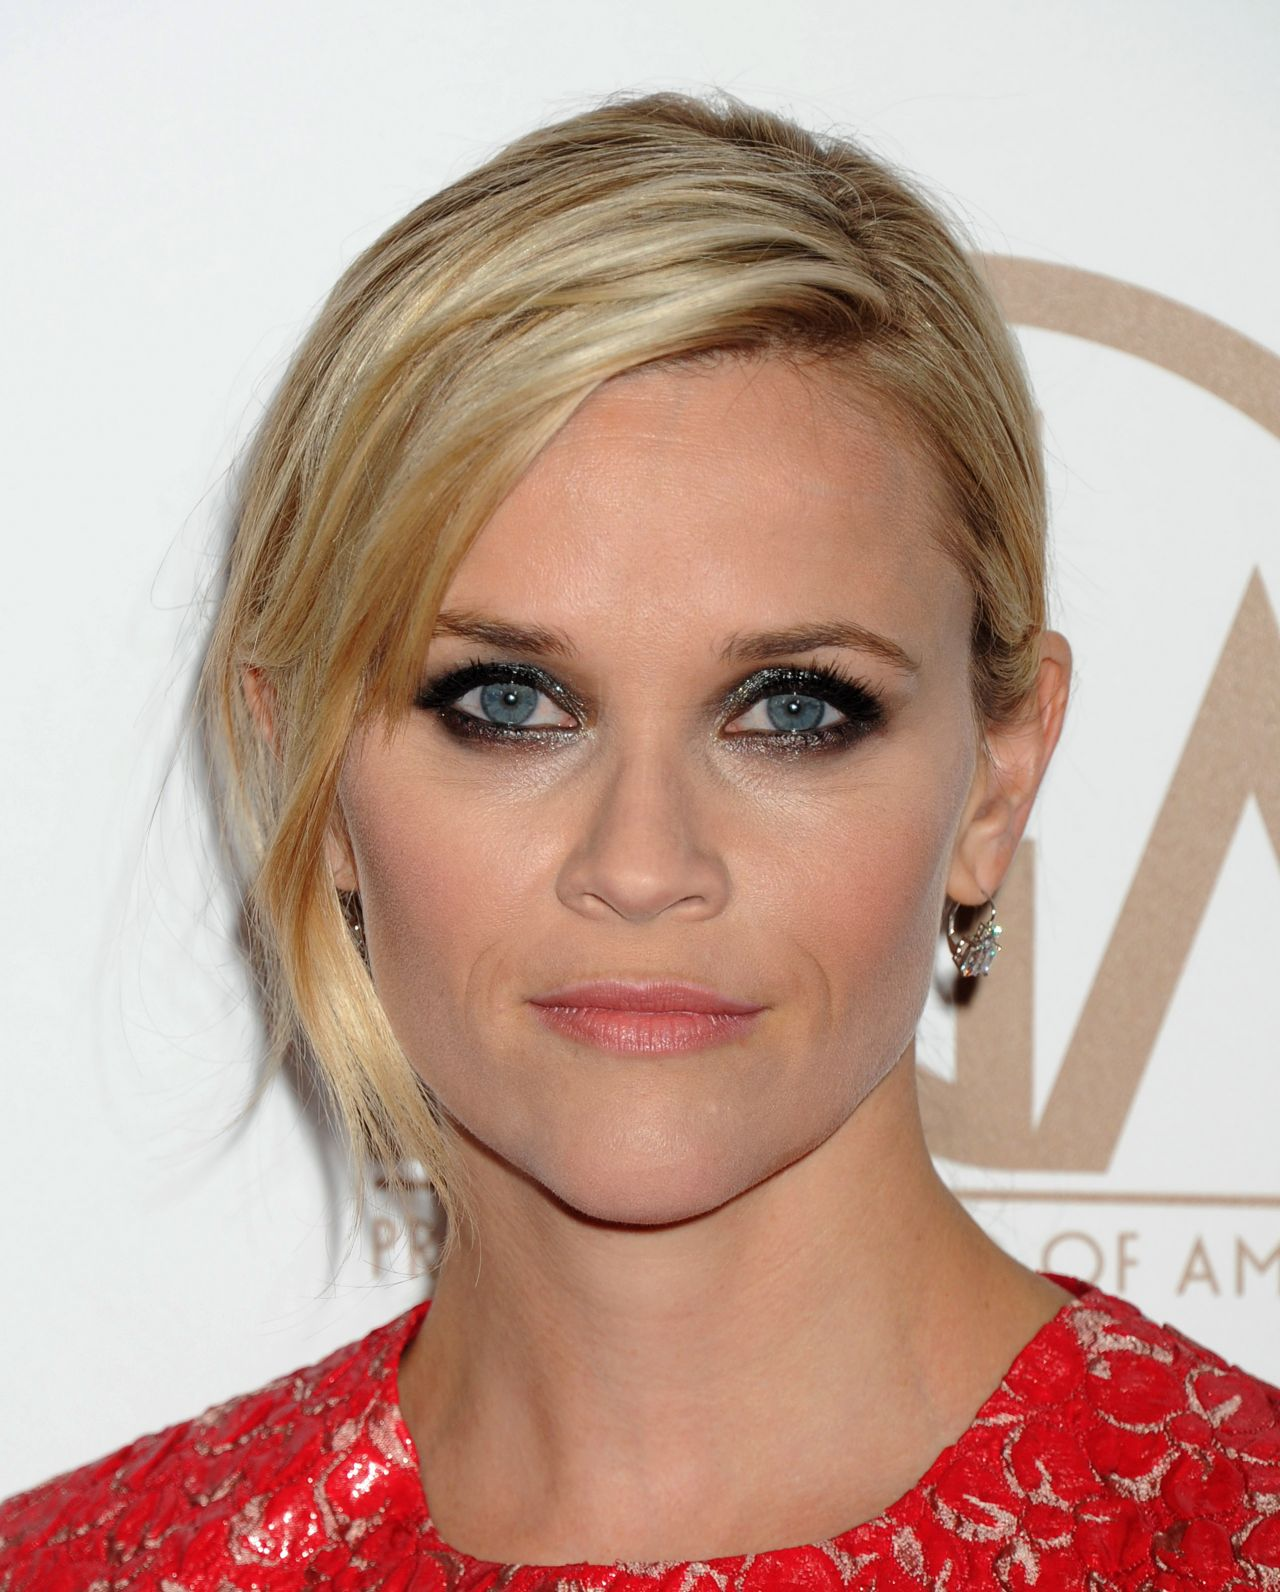 reese-witherspoon-2015-producers-guild-awards-in-los-angeles_5